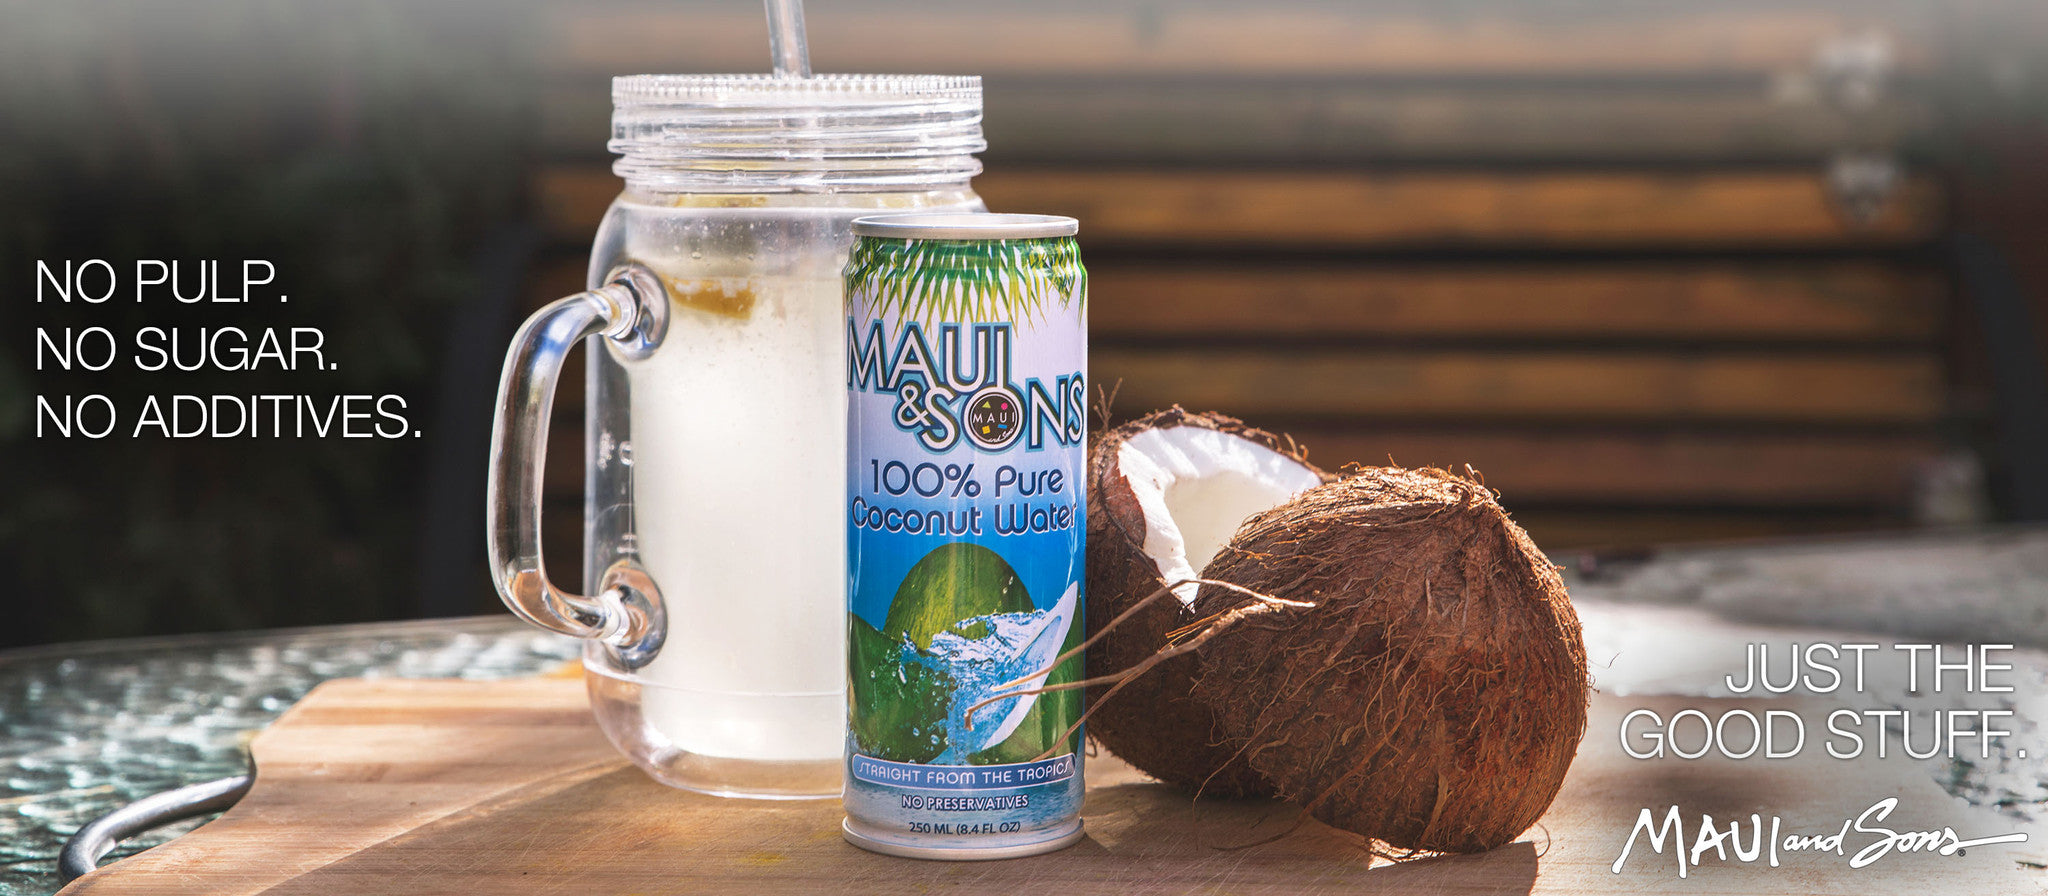 Maui and Sons Coconut Products